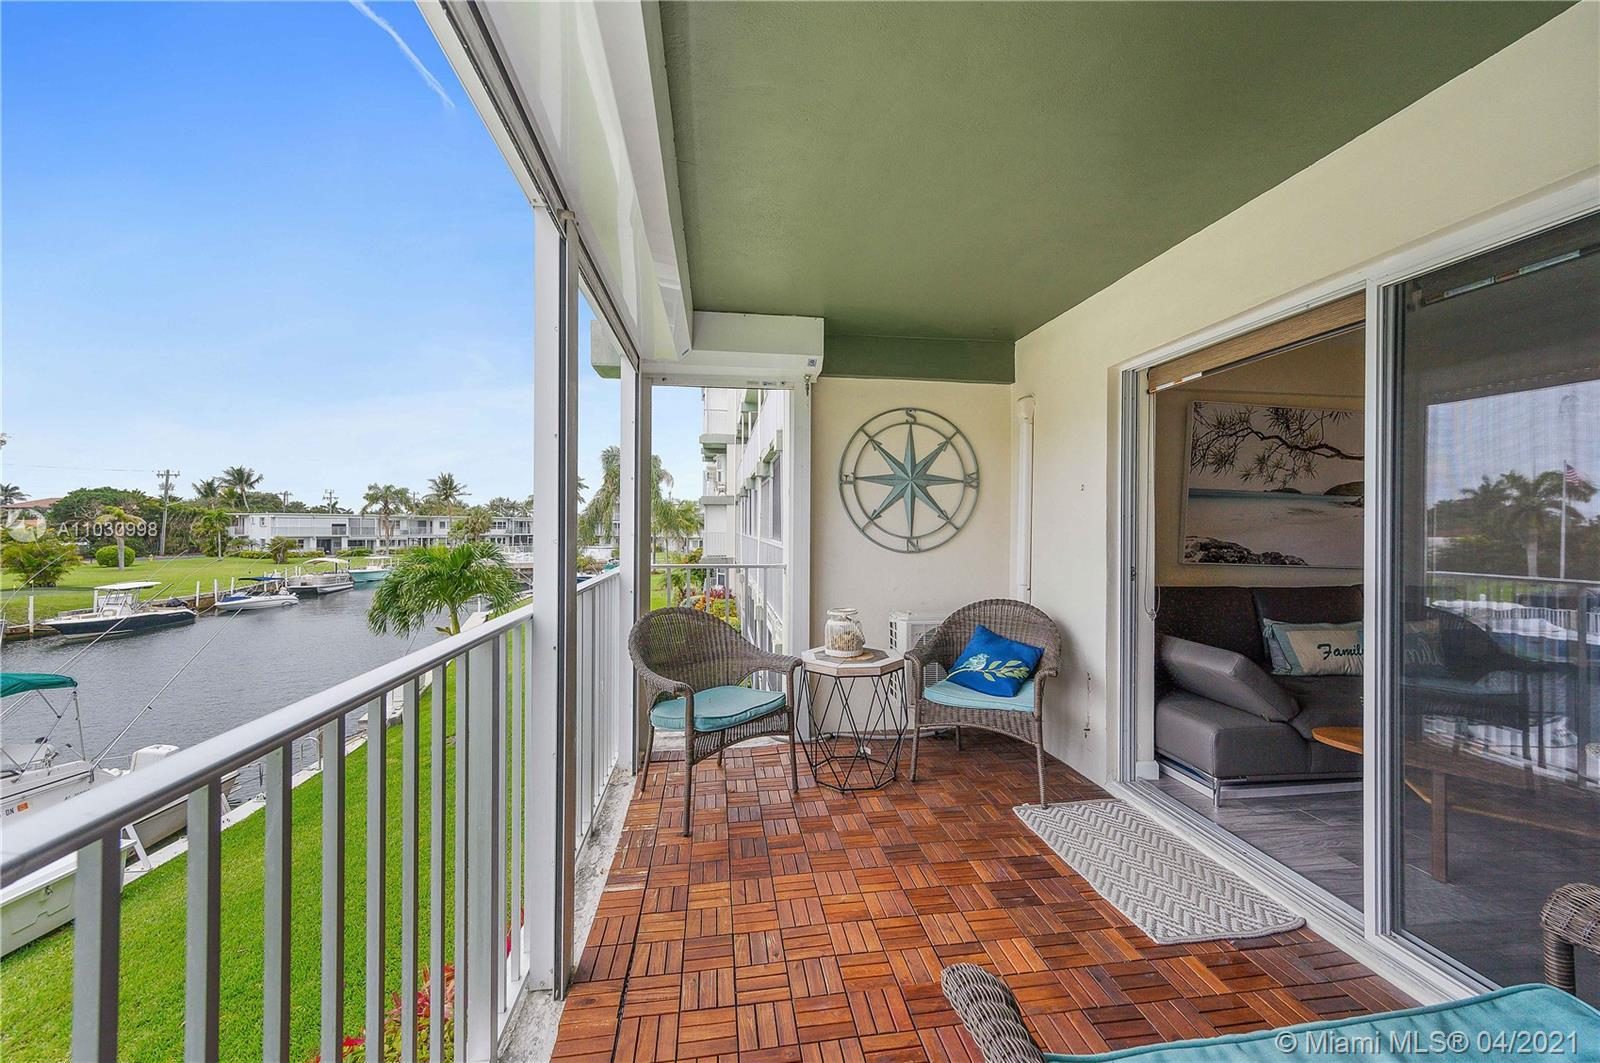 2 bedroom, 2 bath condo with covered balcony & view of the inlet and pool. Unit has been fully renov